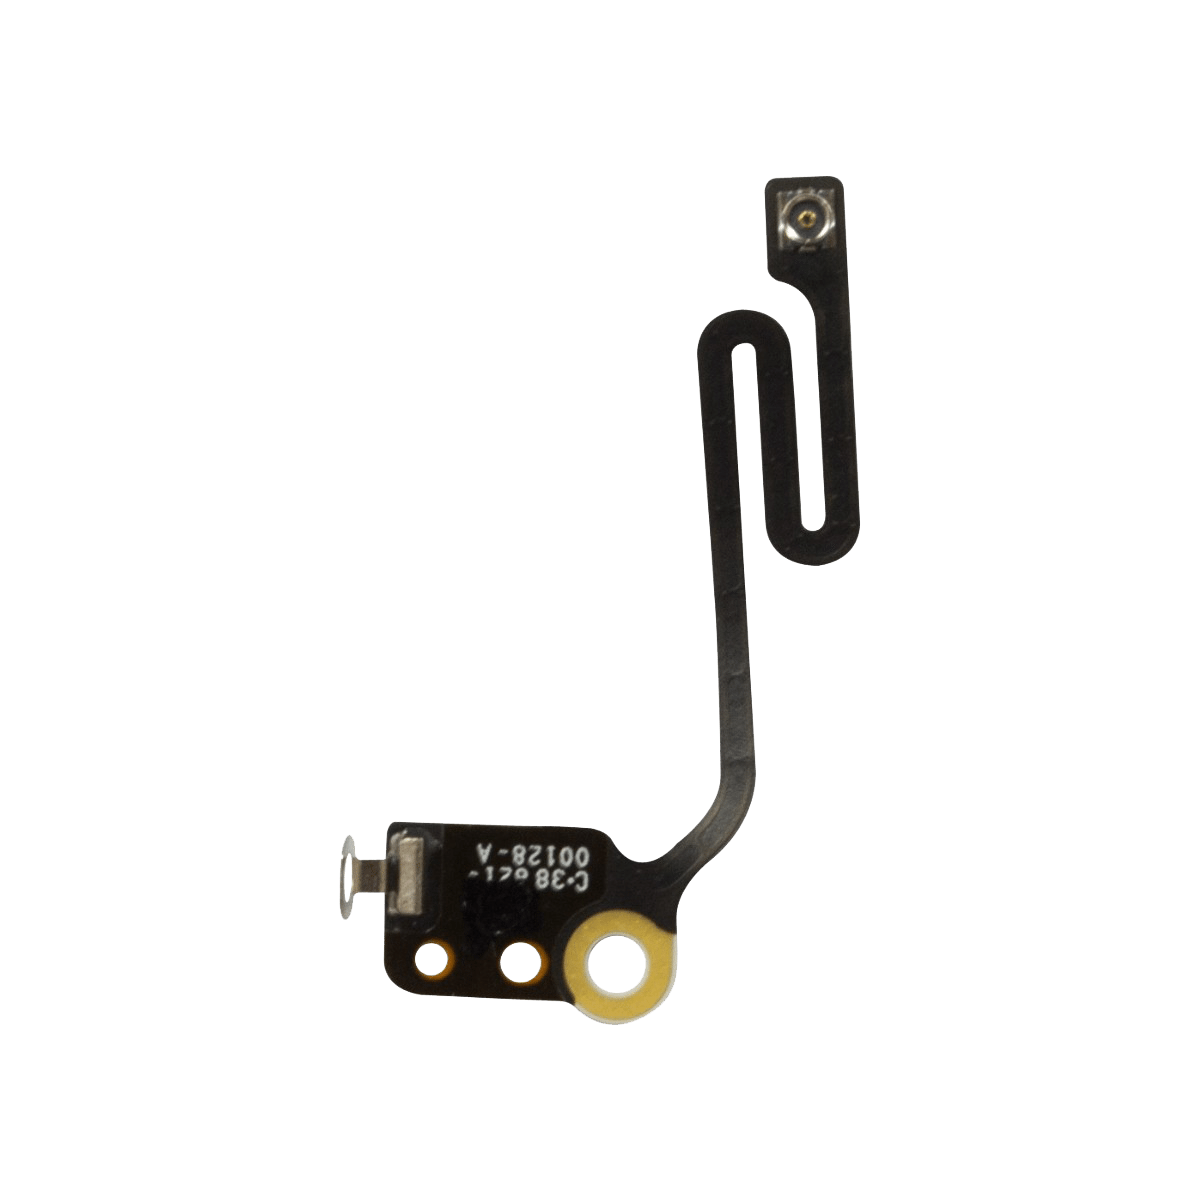 iPhone 6 Plus WiFi Antenna Flex Cable Replacement